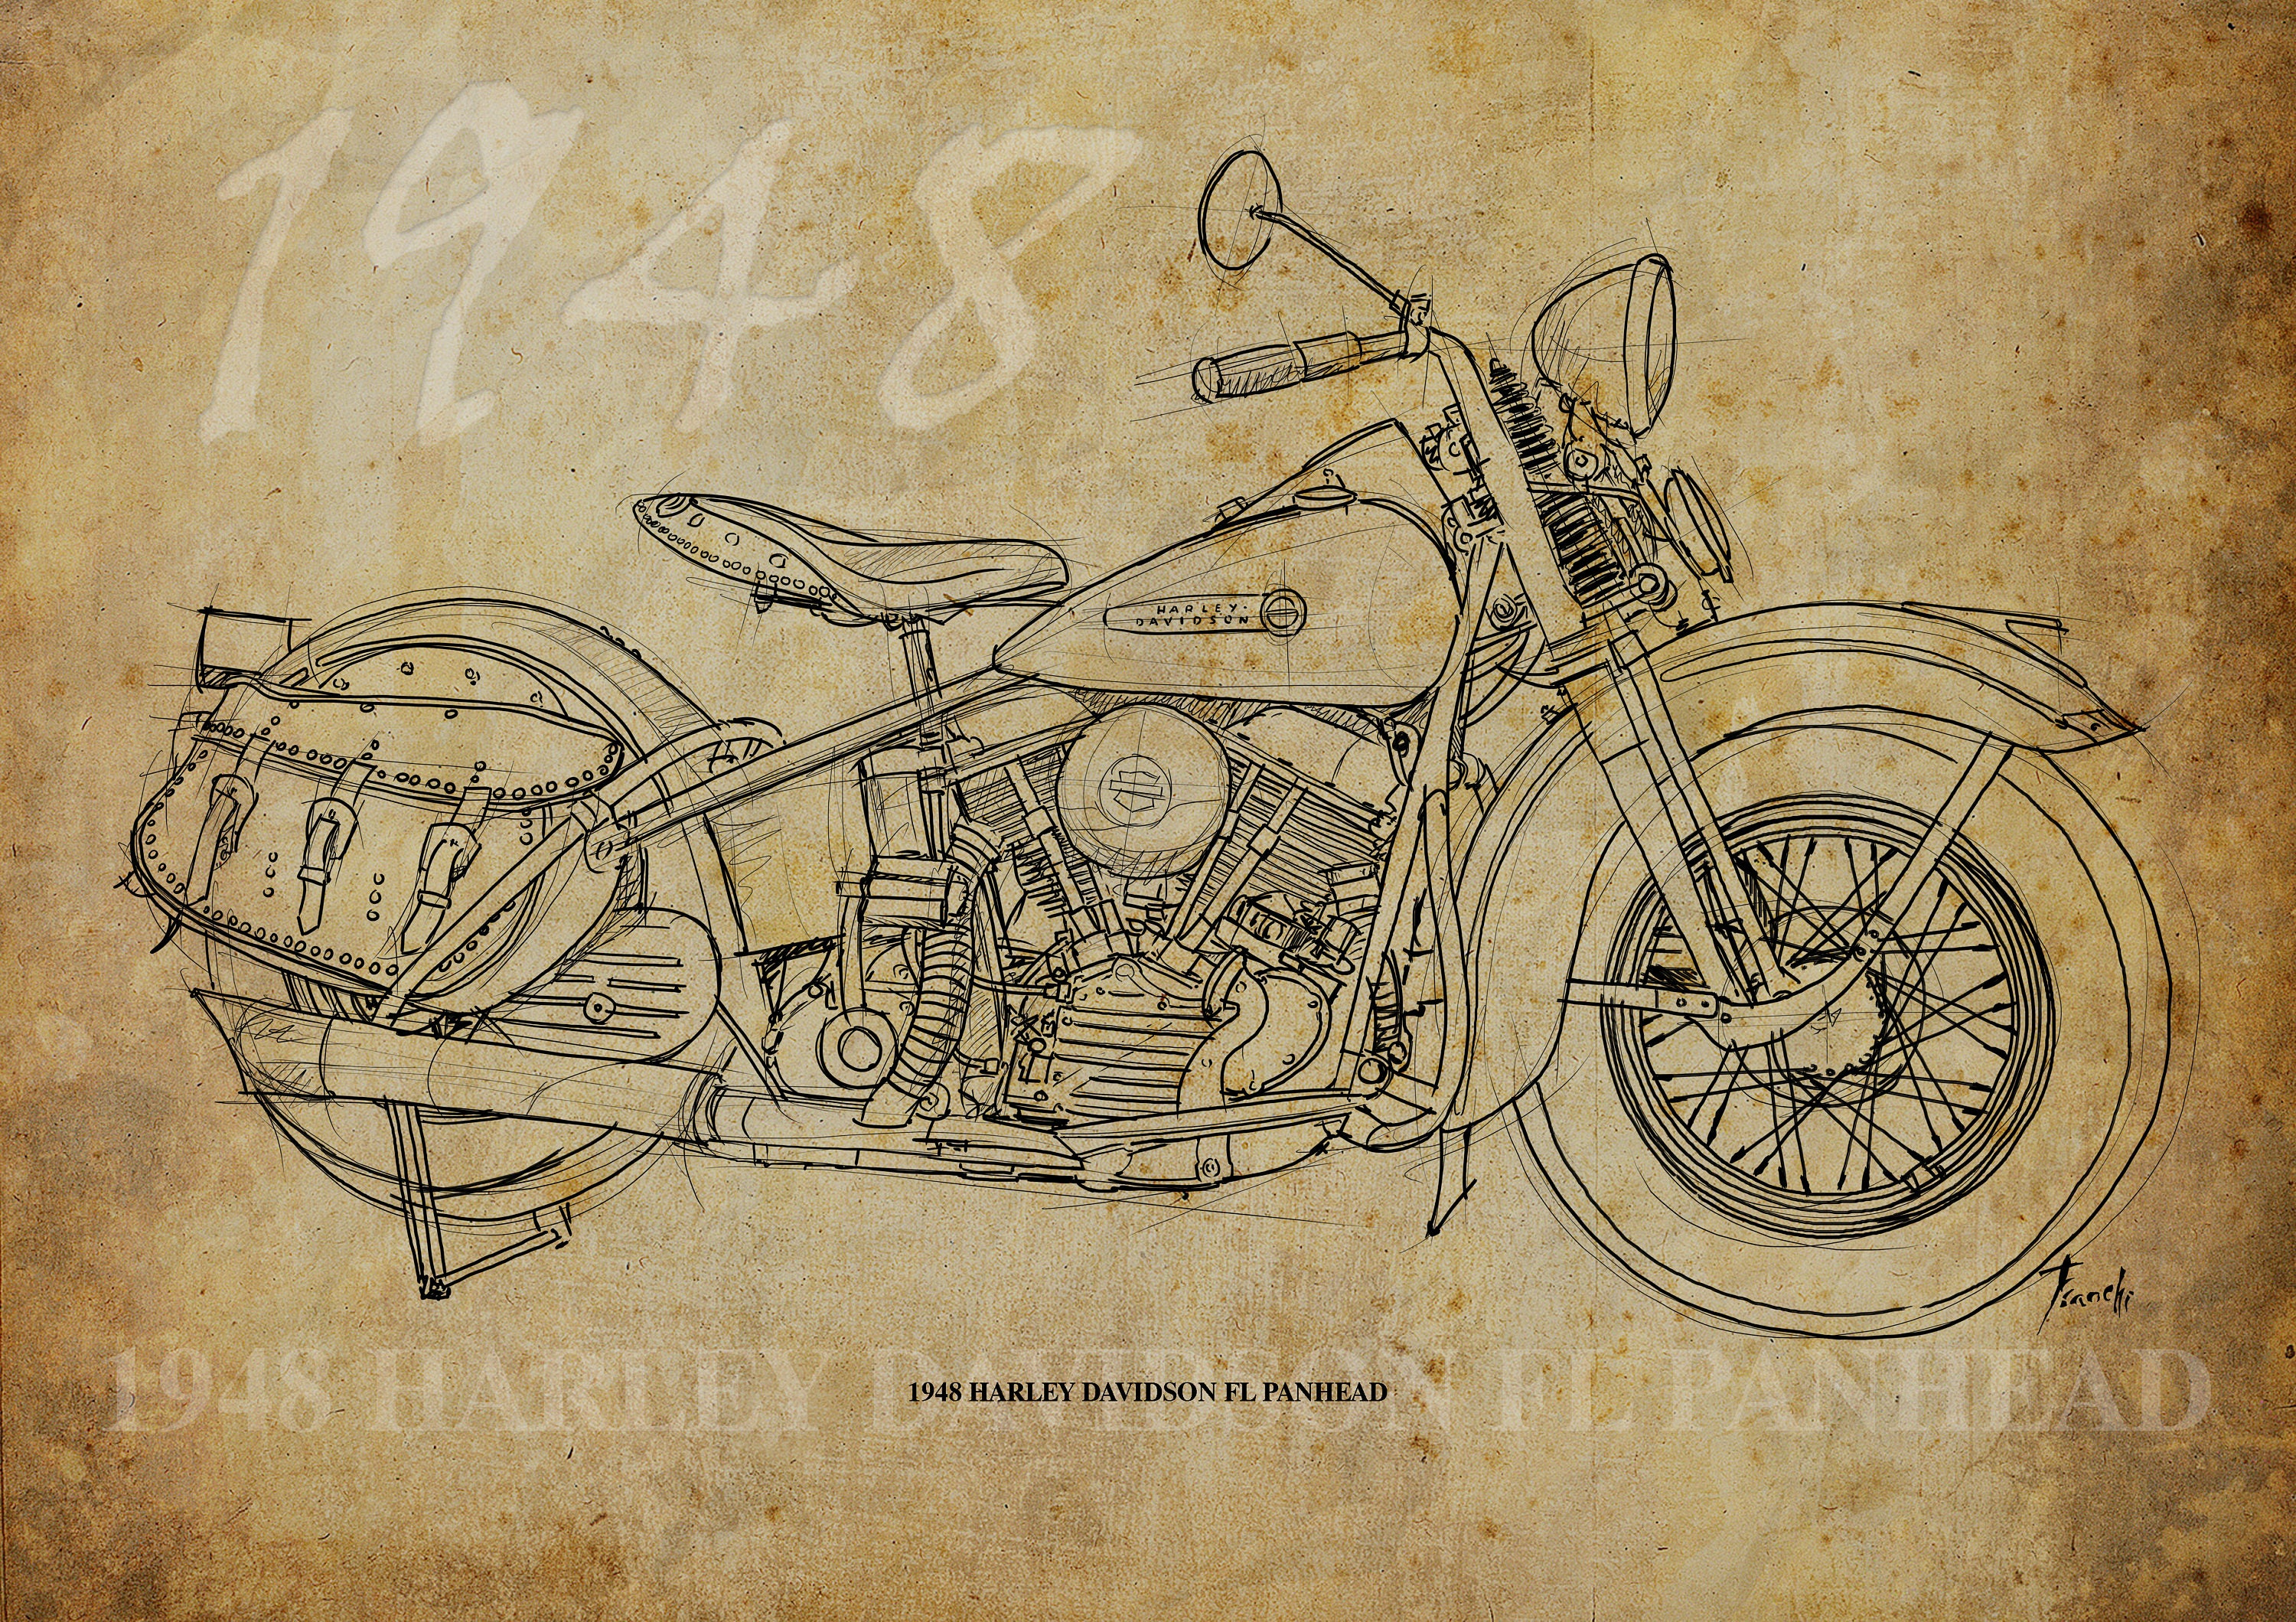 1948 harley davidson fl panhead 12x850 in to 60x42in based zoom kristyandbryce Image collections